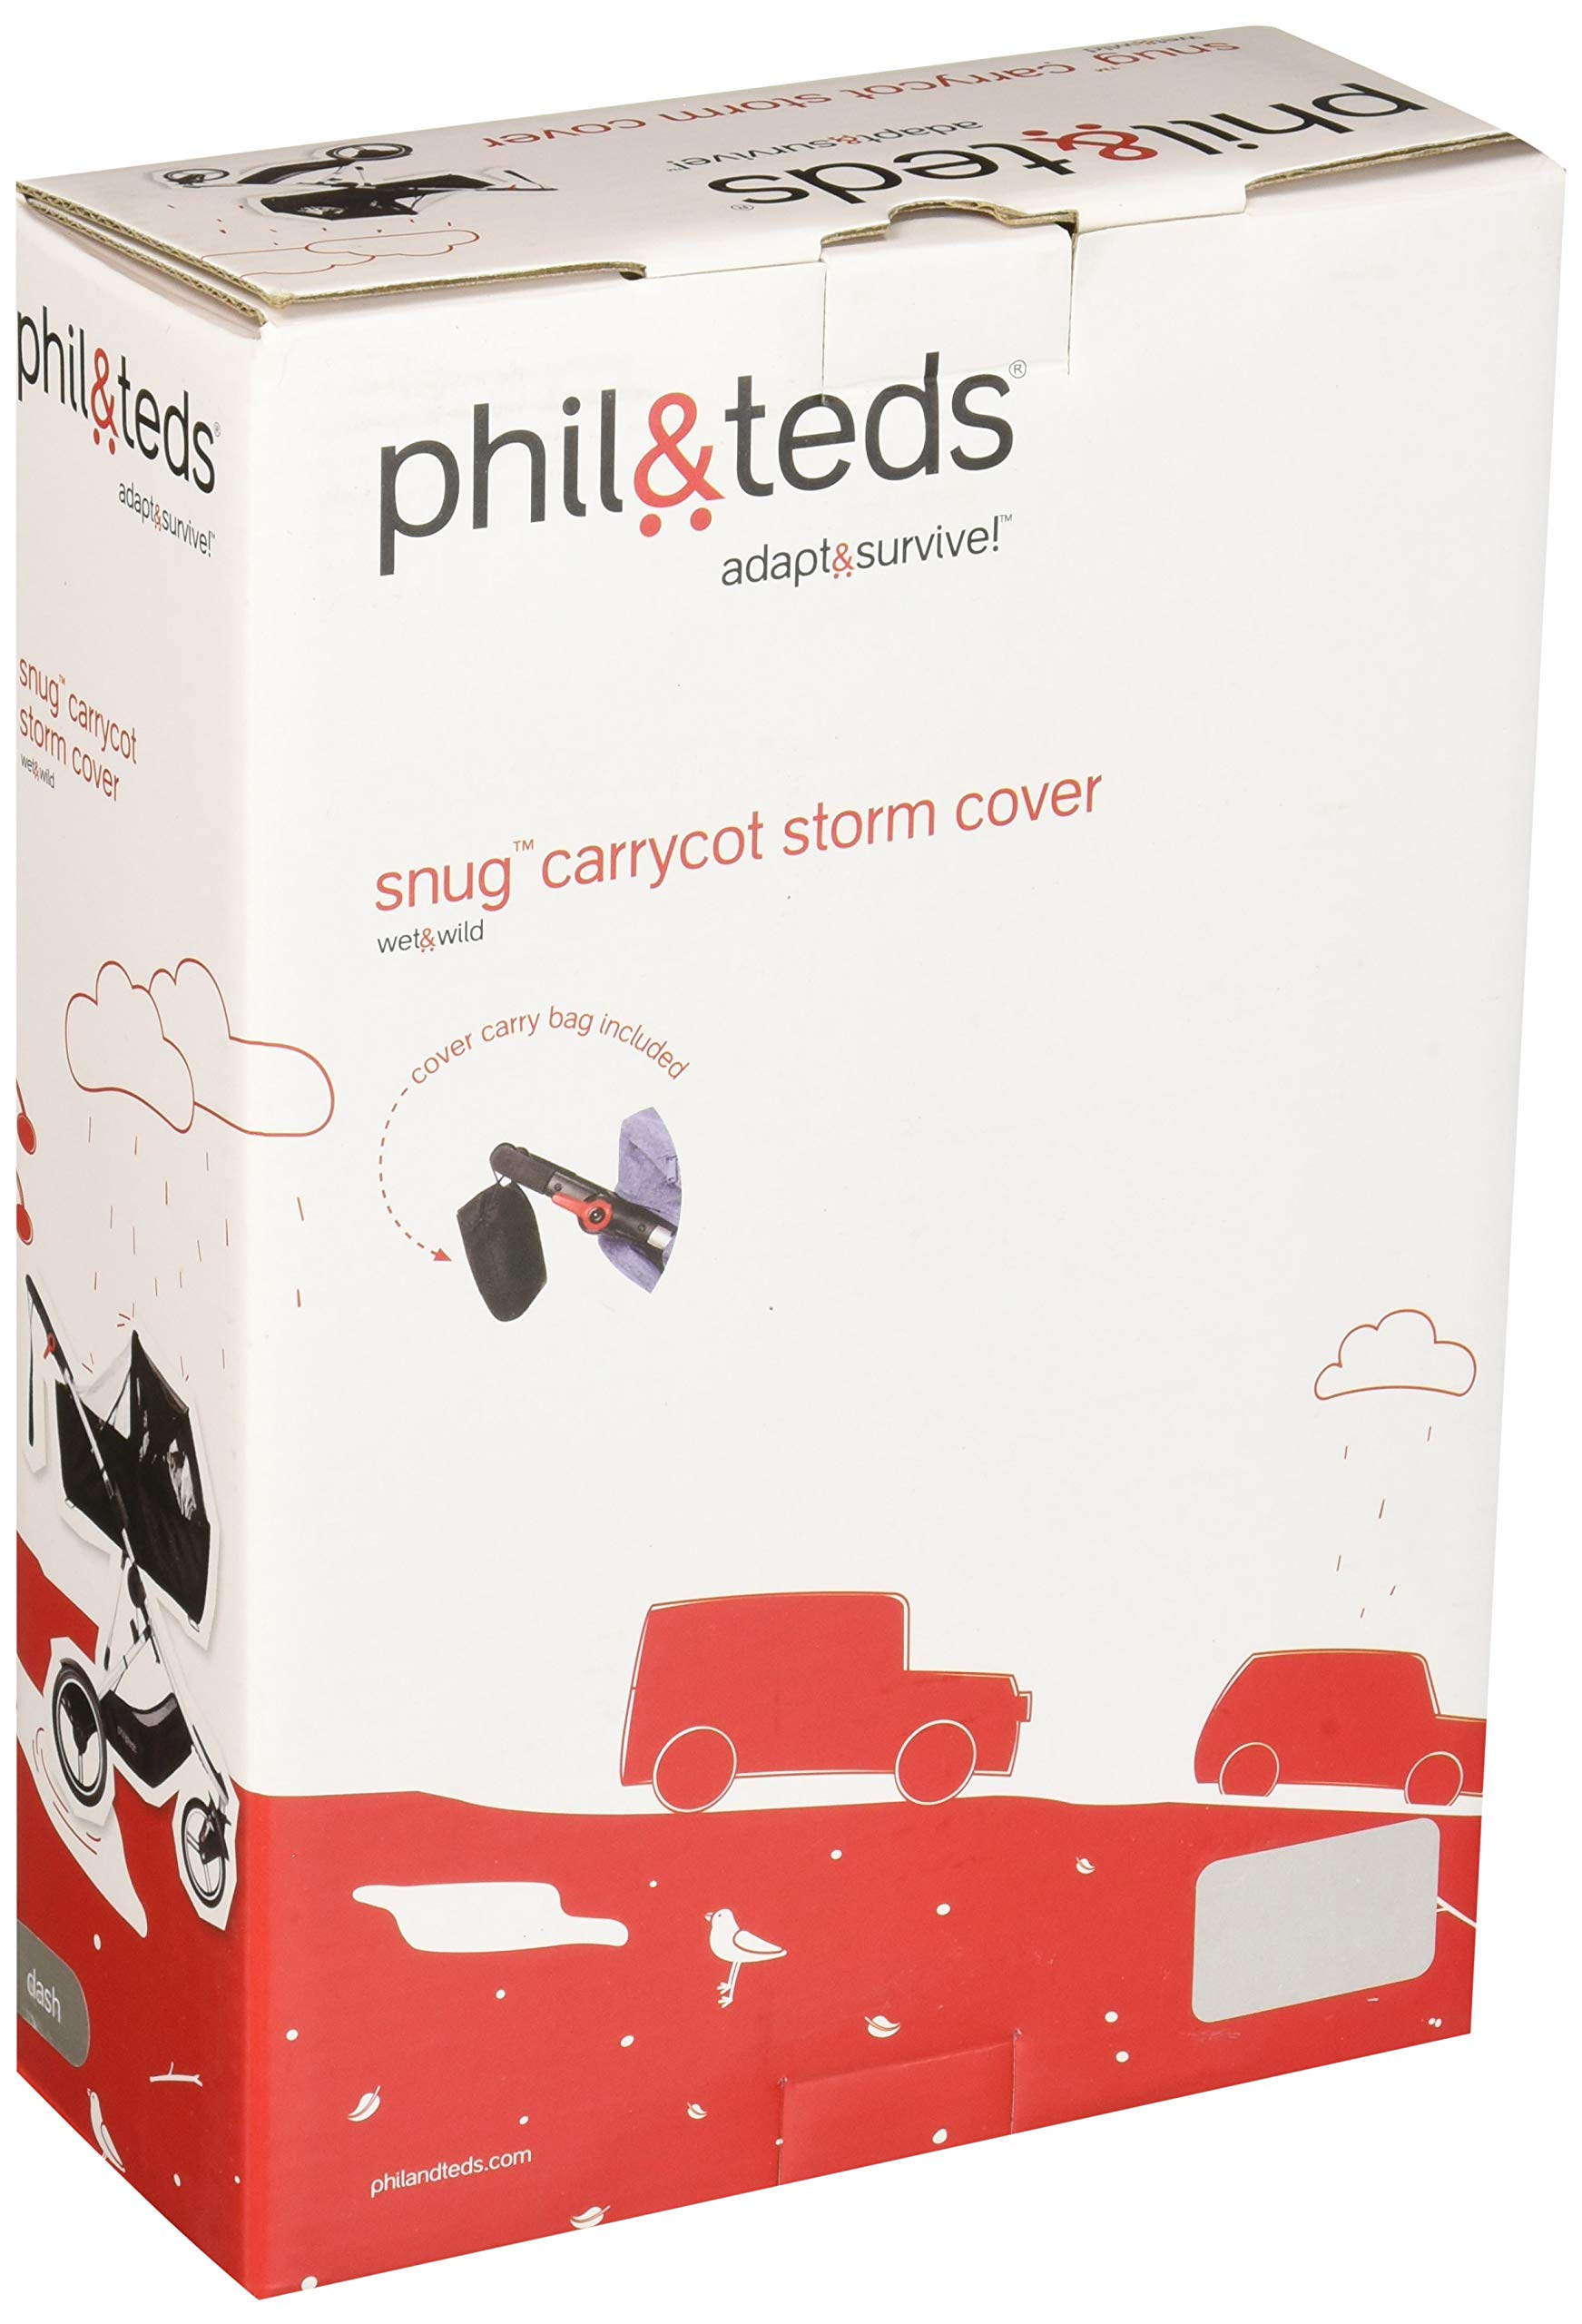 phil&teds Storm Cover for Dash Snug Carrycot by phil&teds (Image #2)